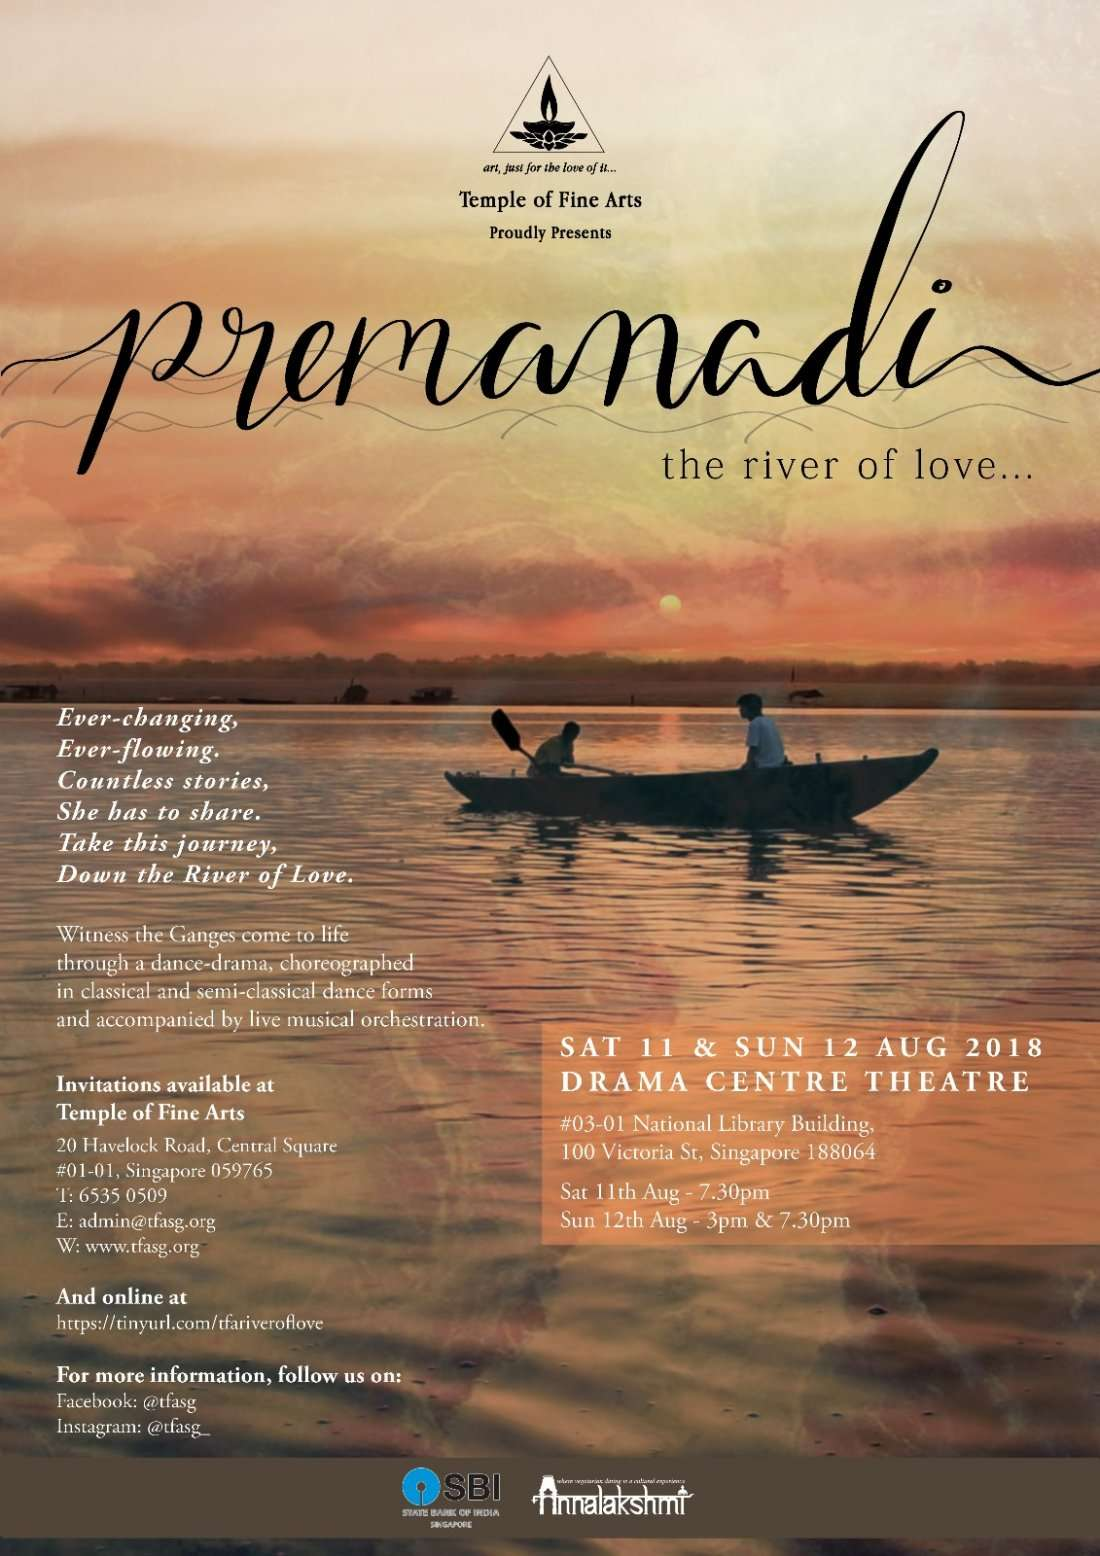 Premanadi-The River of Love